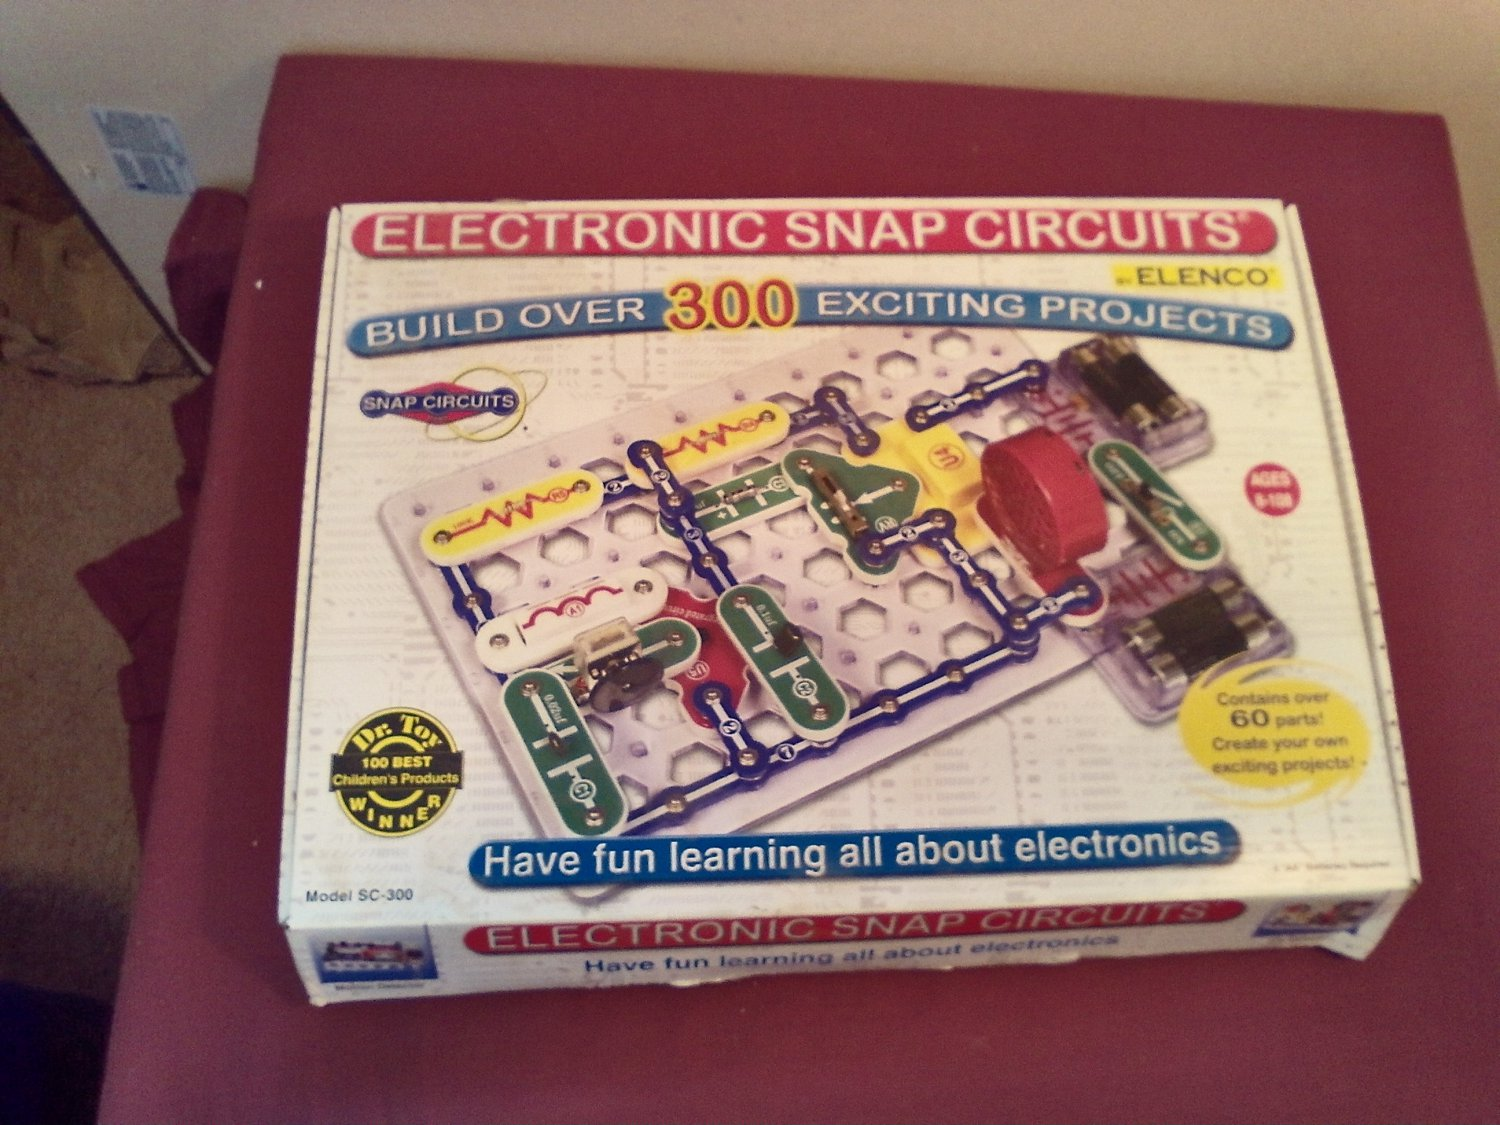 Electronic Snap Circuits 300 Experiments Sc Electricity Science Elenco Electronics Electrical Project Kid Educational Kit Toy By Mw